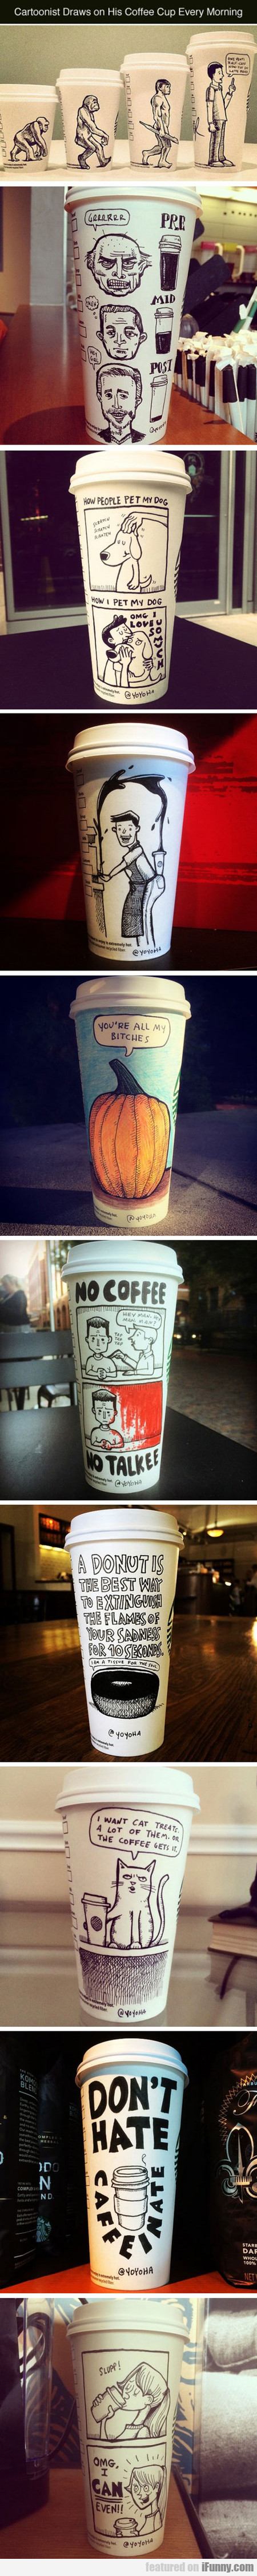 Cartoonist Draws On His Coffee Cup Every Morning